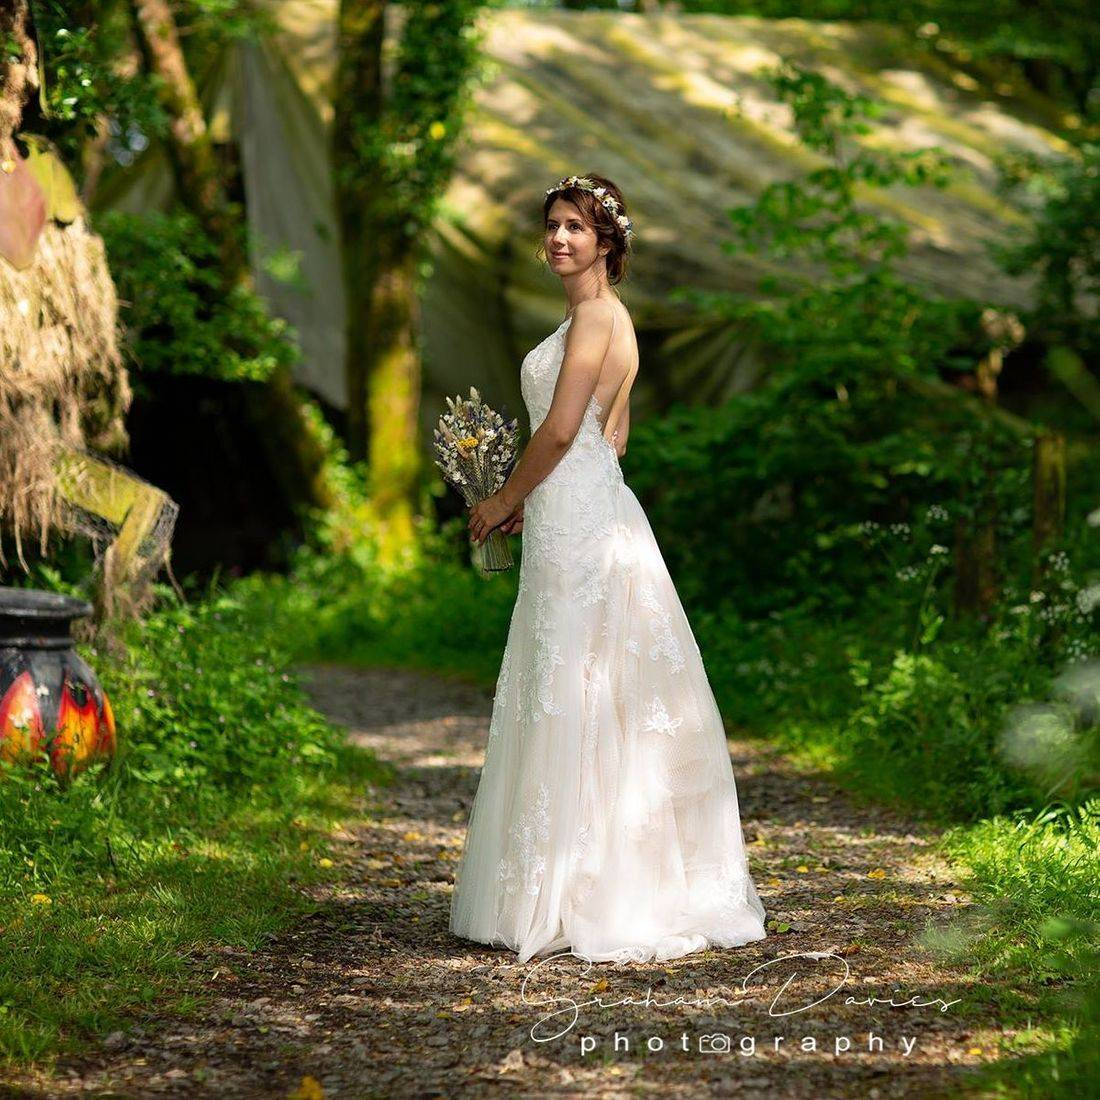 Beautiful Bride in the enchanted forest at Coed Weddings